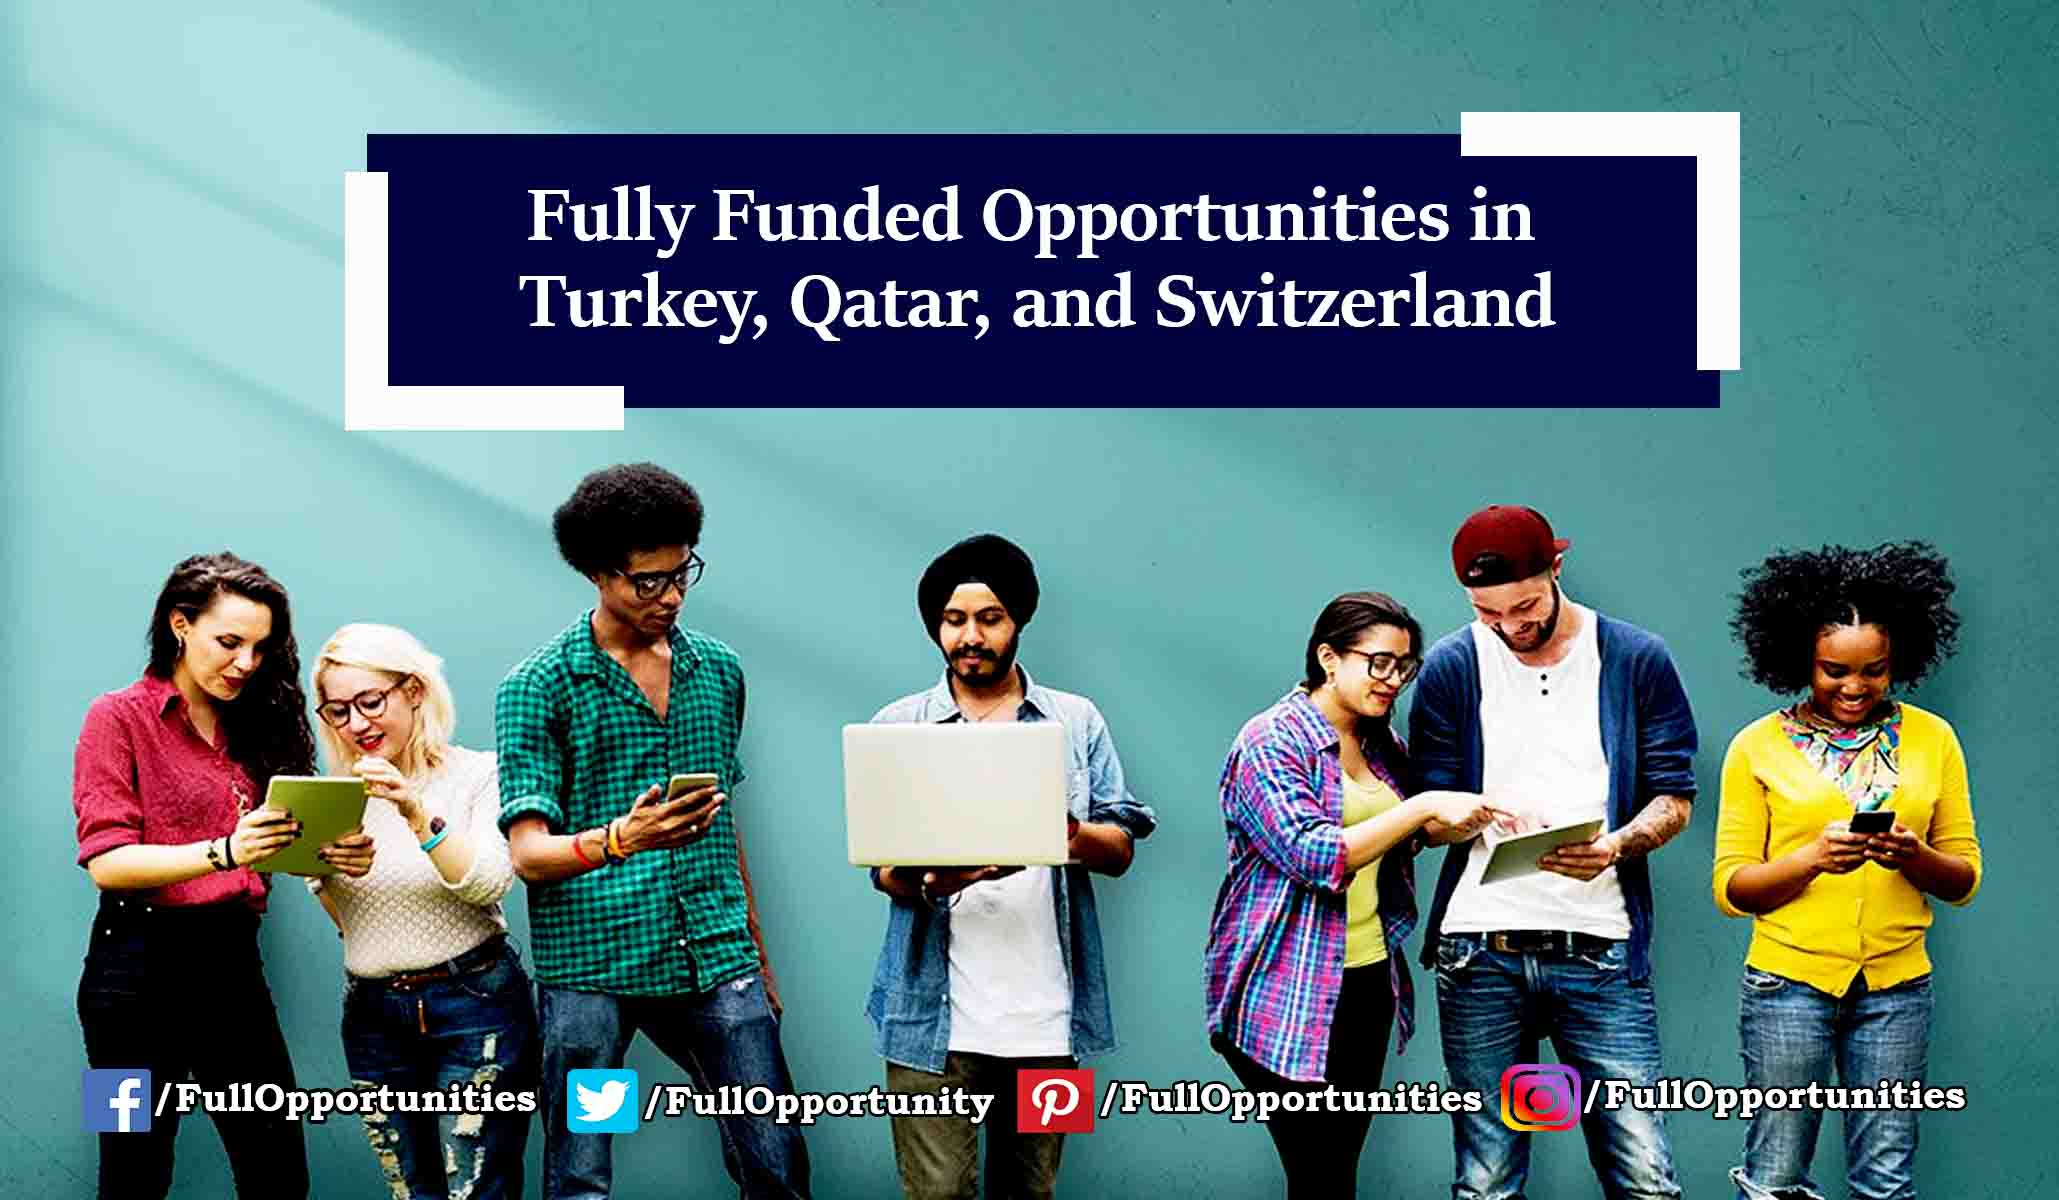 Fully Funded Opportunities in Turkey, Qatar, and Switzerland